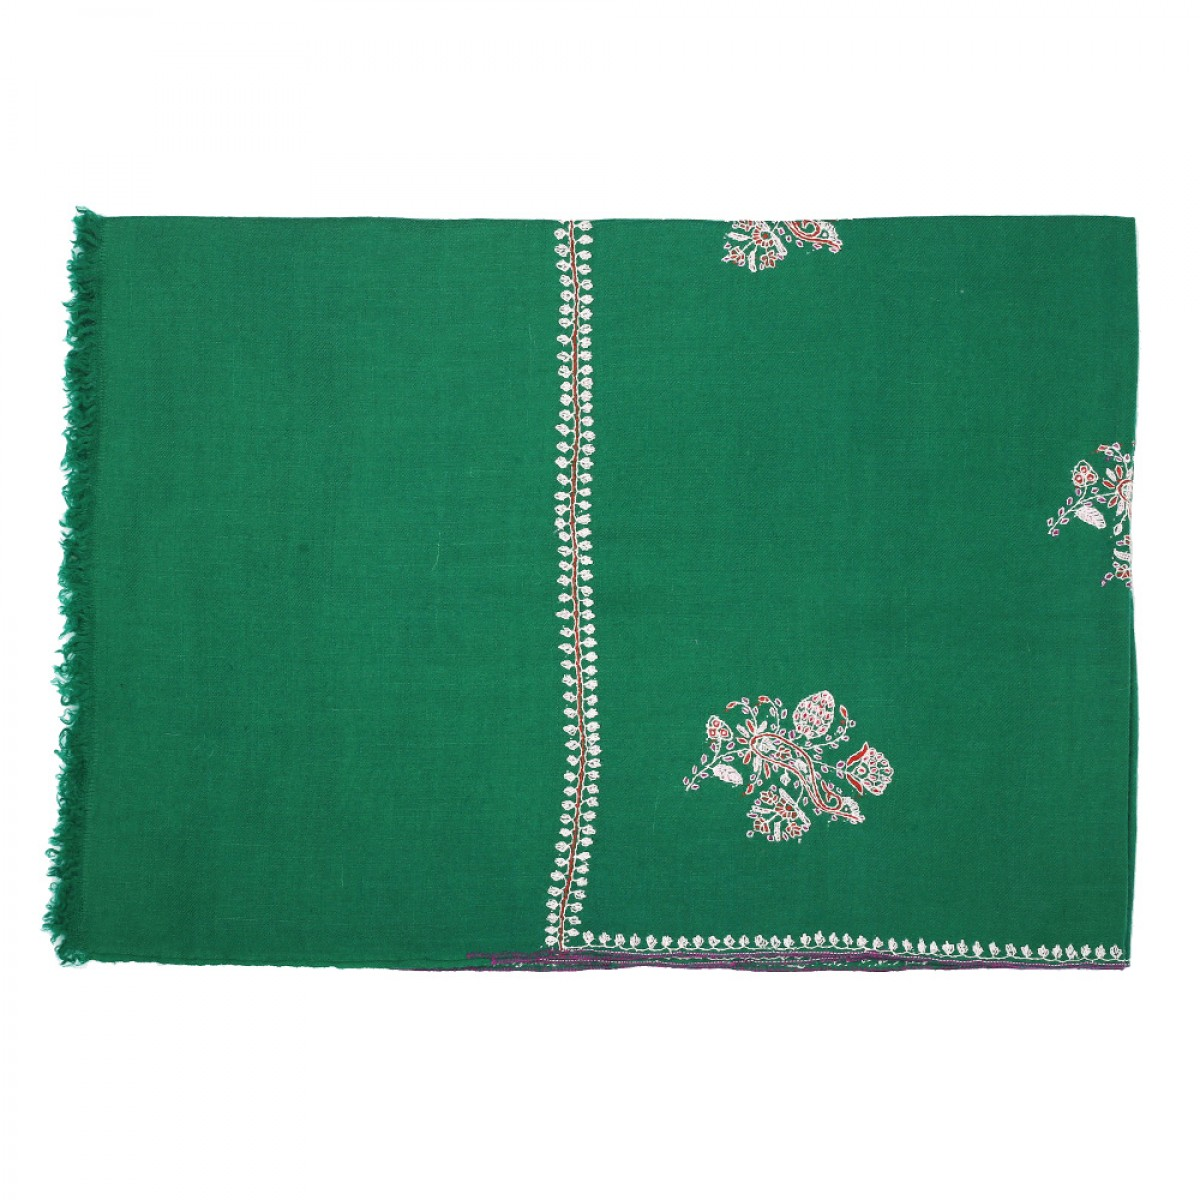 Embroidered Pashmina Stole - Emerald Green